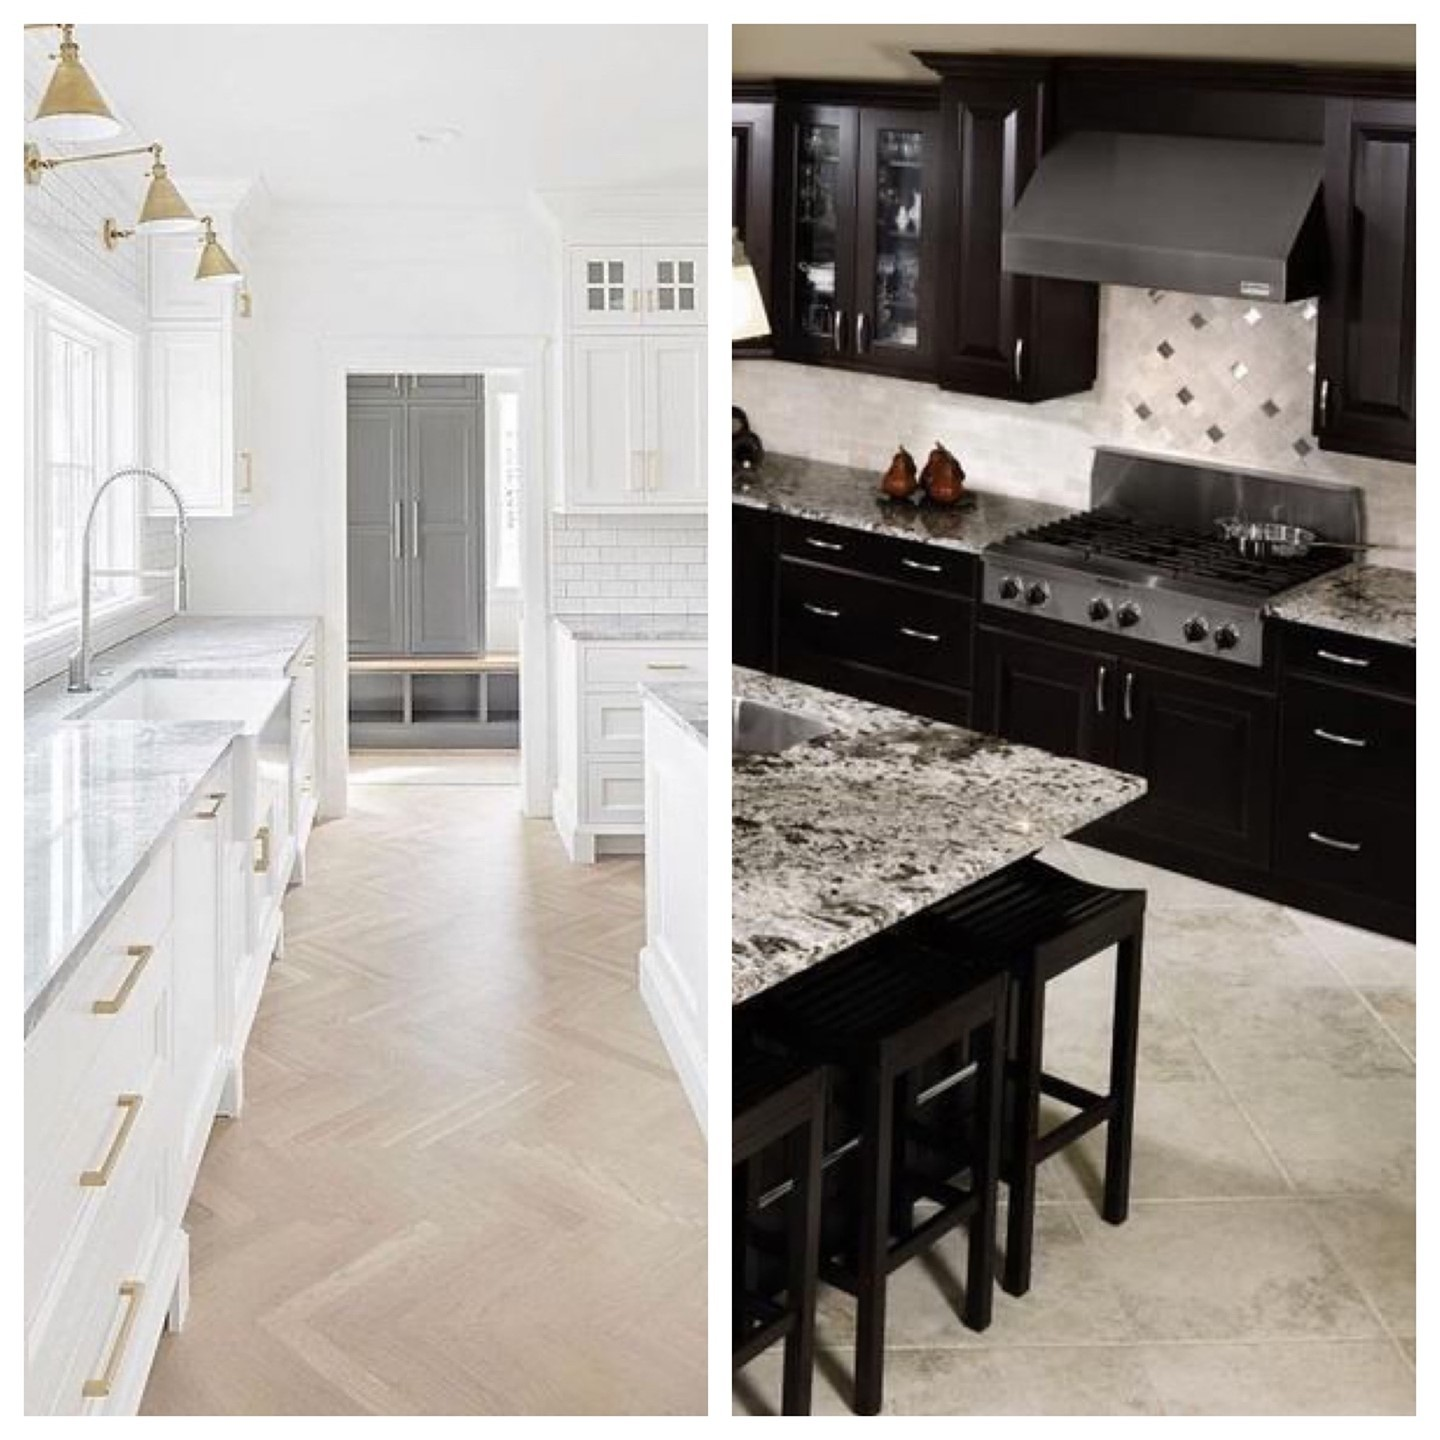 When searching for your dream home which kitchen are you more drawn too?  Light & bright or dark & modern?  Let us help you find that perfec